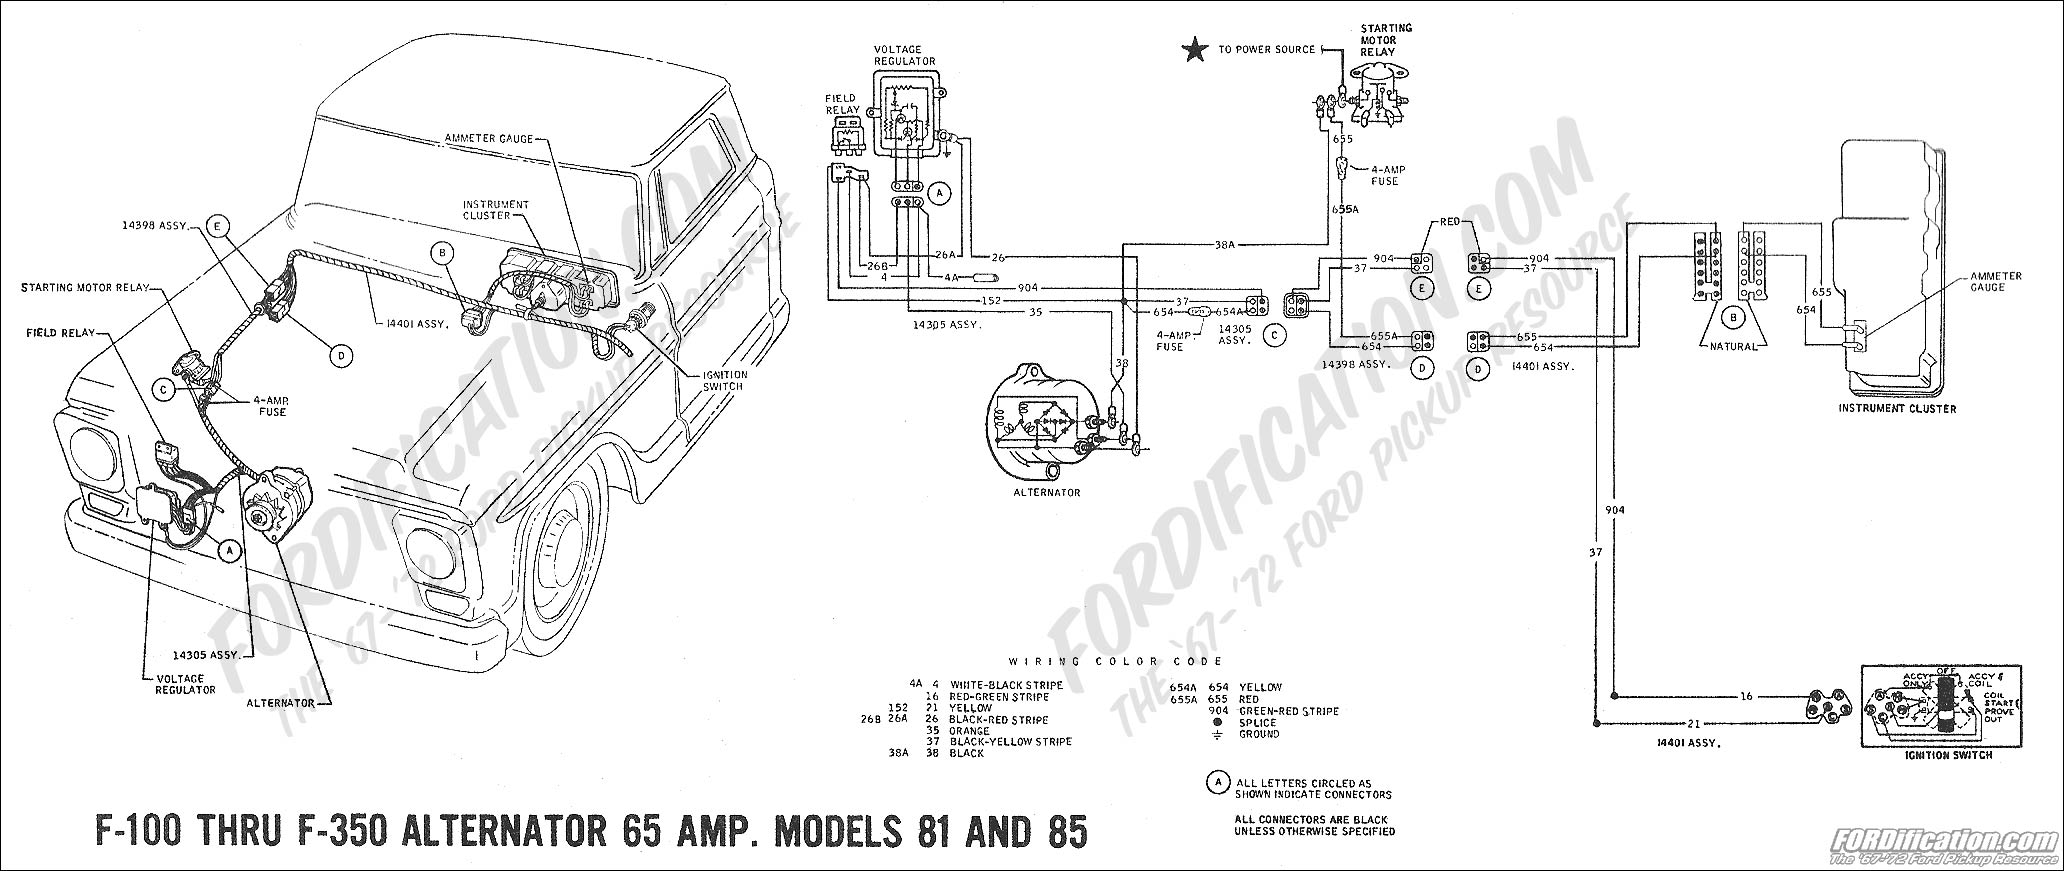 ford truck technical drawings and schematics section h wiring rh fordification com 1998 Ford Explorer Alternator Wiring Diagram 97 Ford Explorer Alternator Wiring Diagram